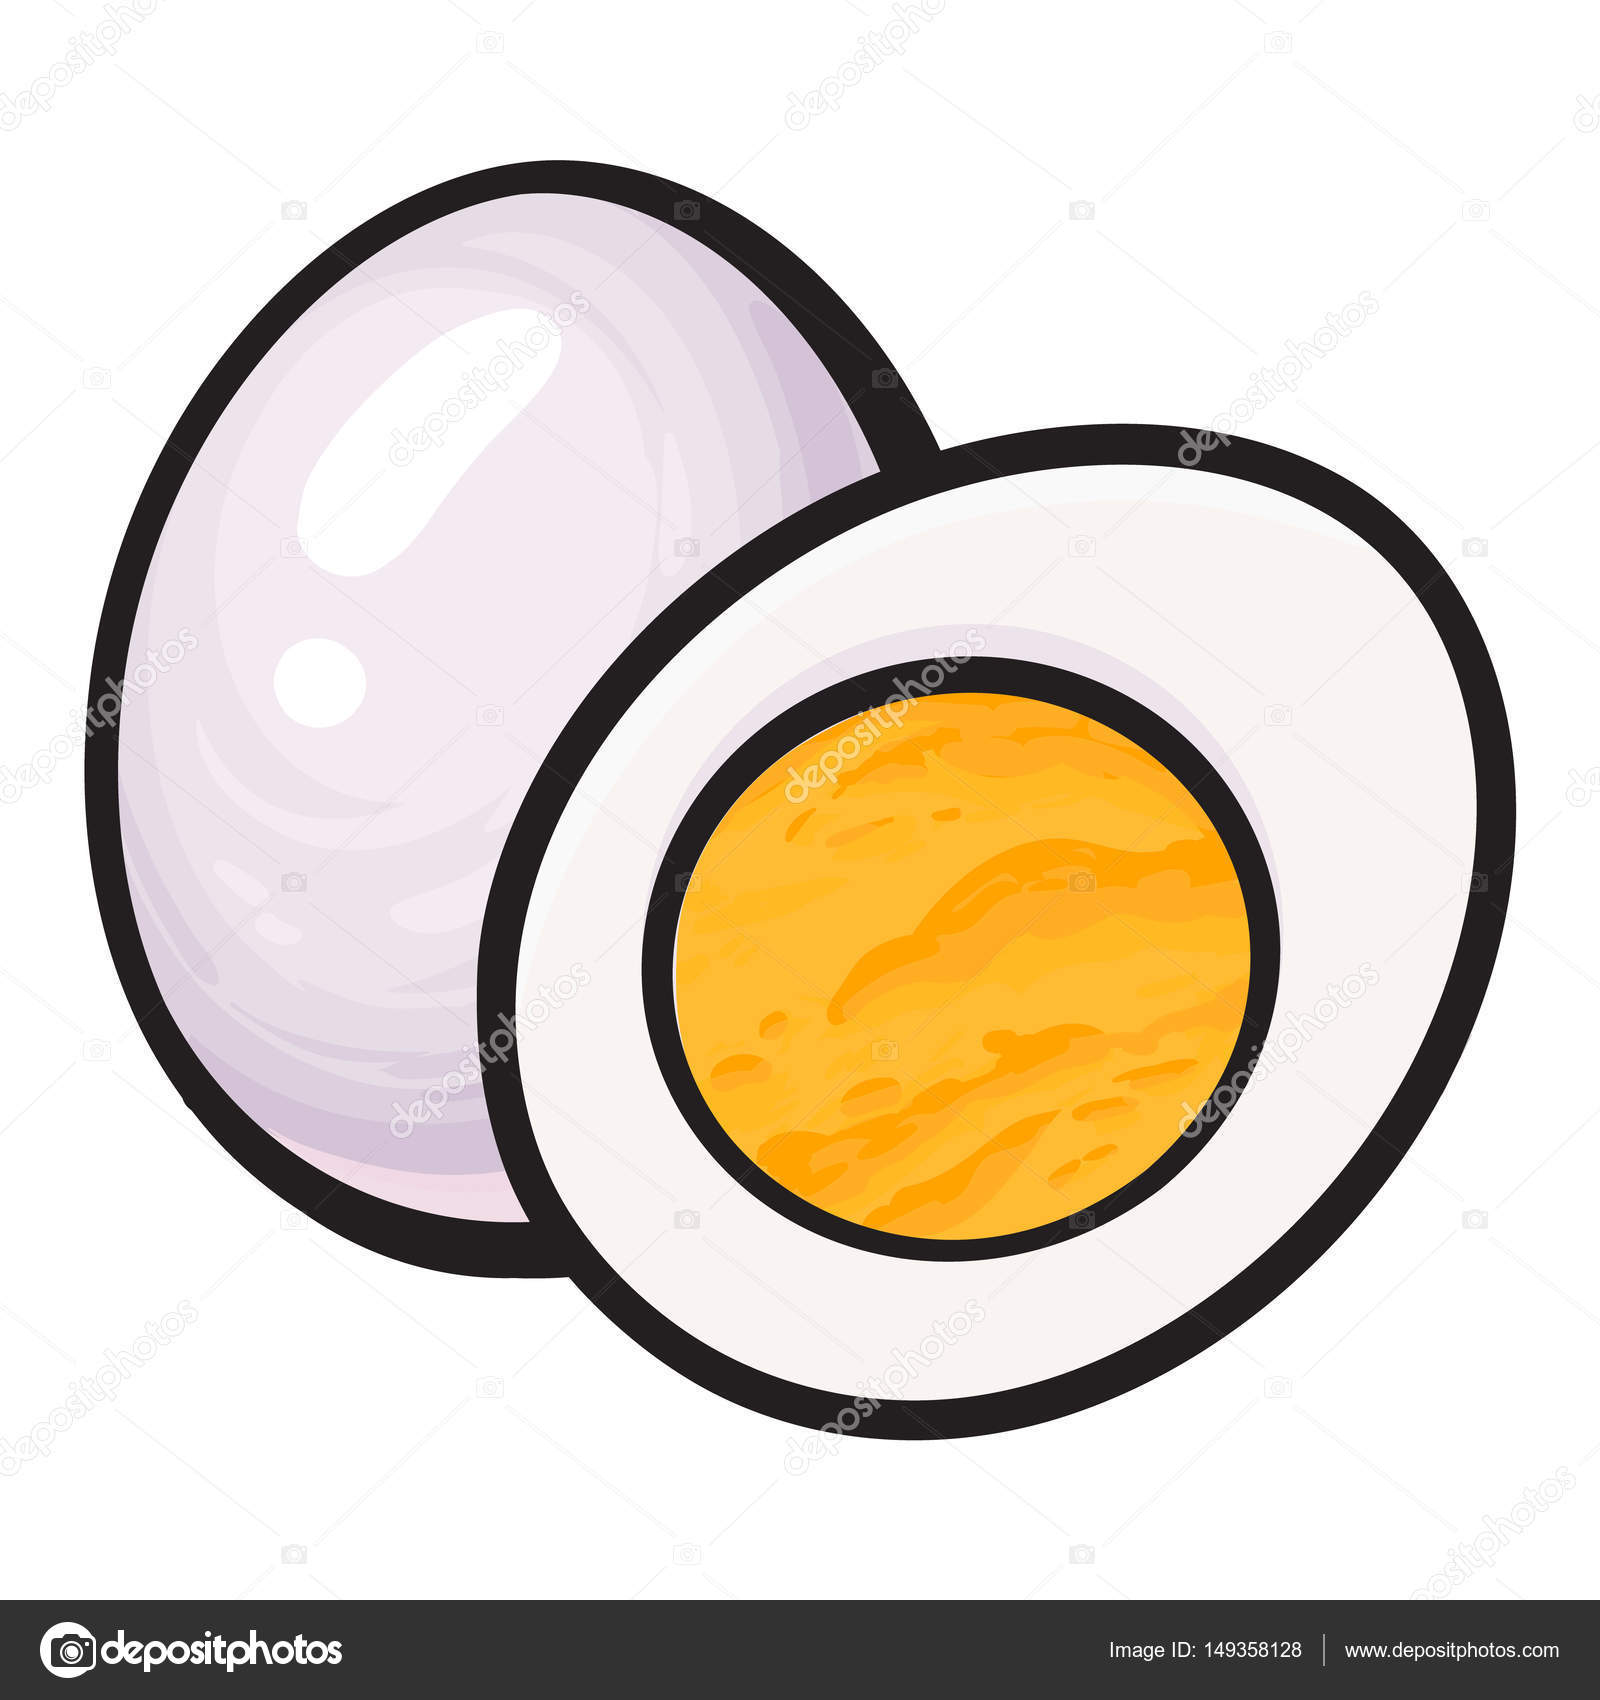 chicken egg drawing at getdrawings com free for personal use rh getdrawings com egg clipart png egg clipart png